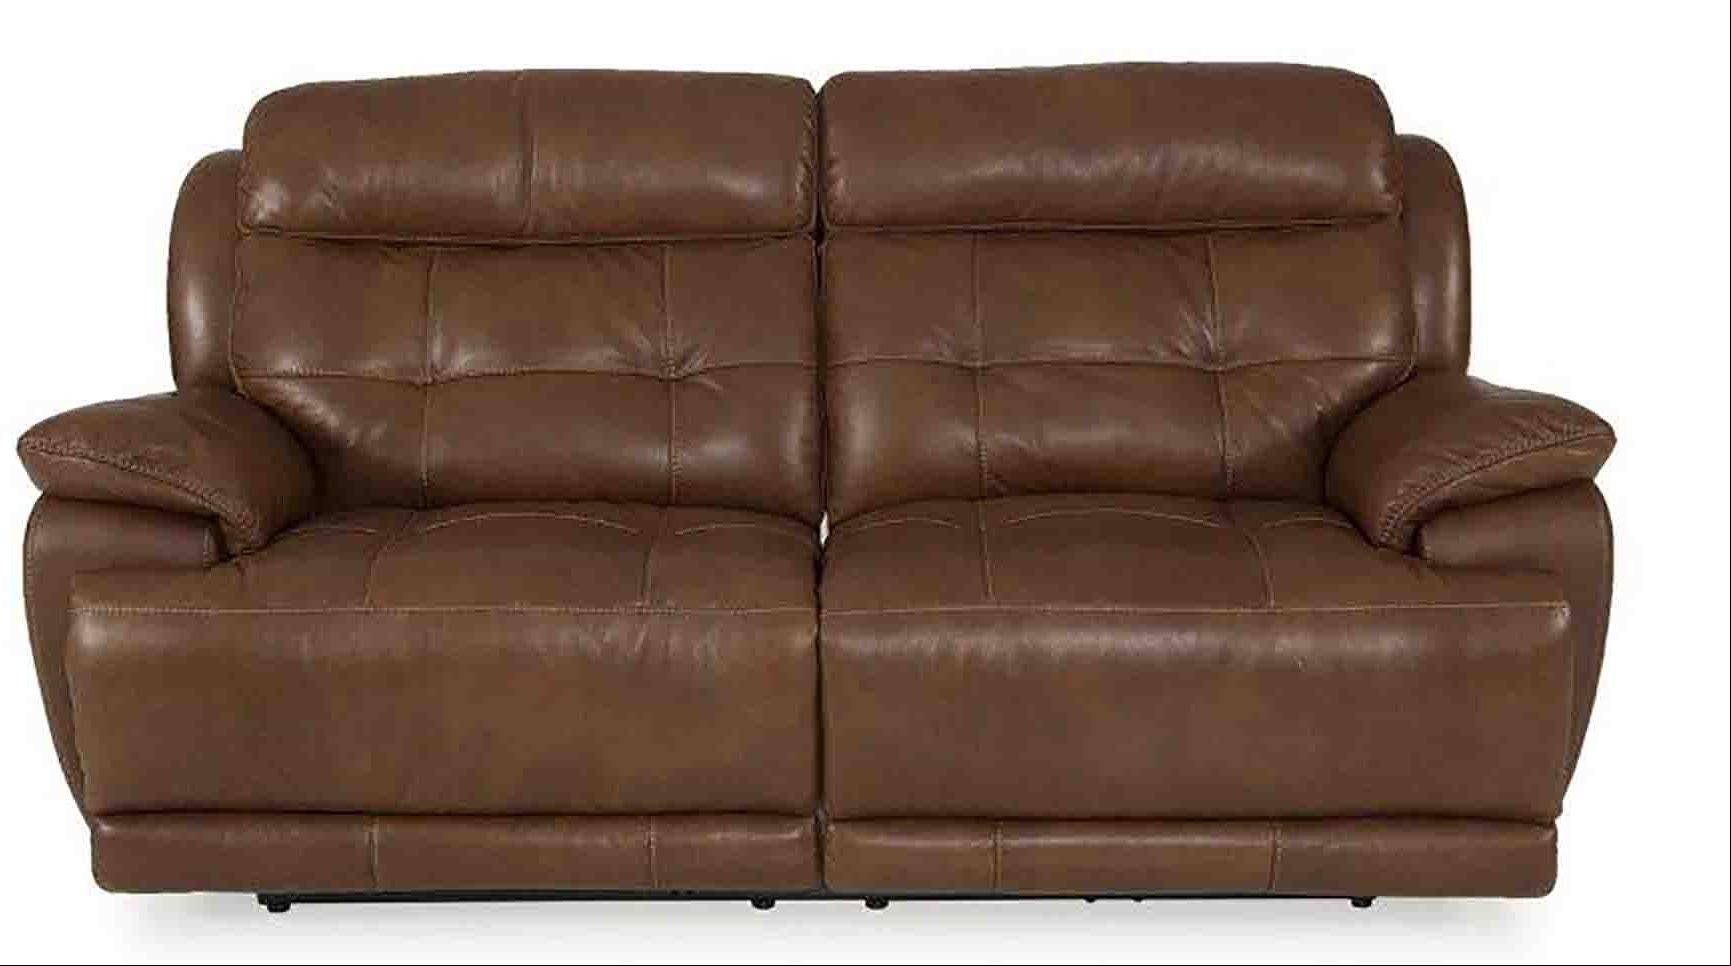 The motion sofa offers several ways to relax -- as a big, comfy sofa, and as a recliner.